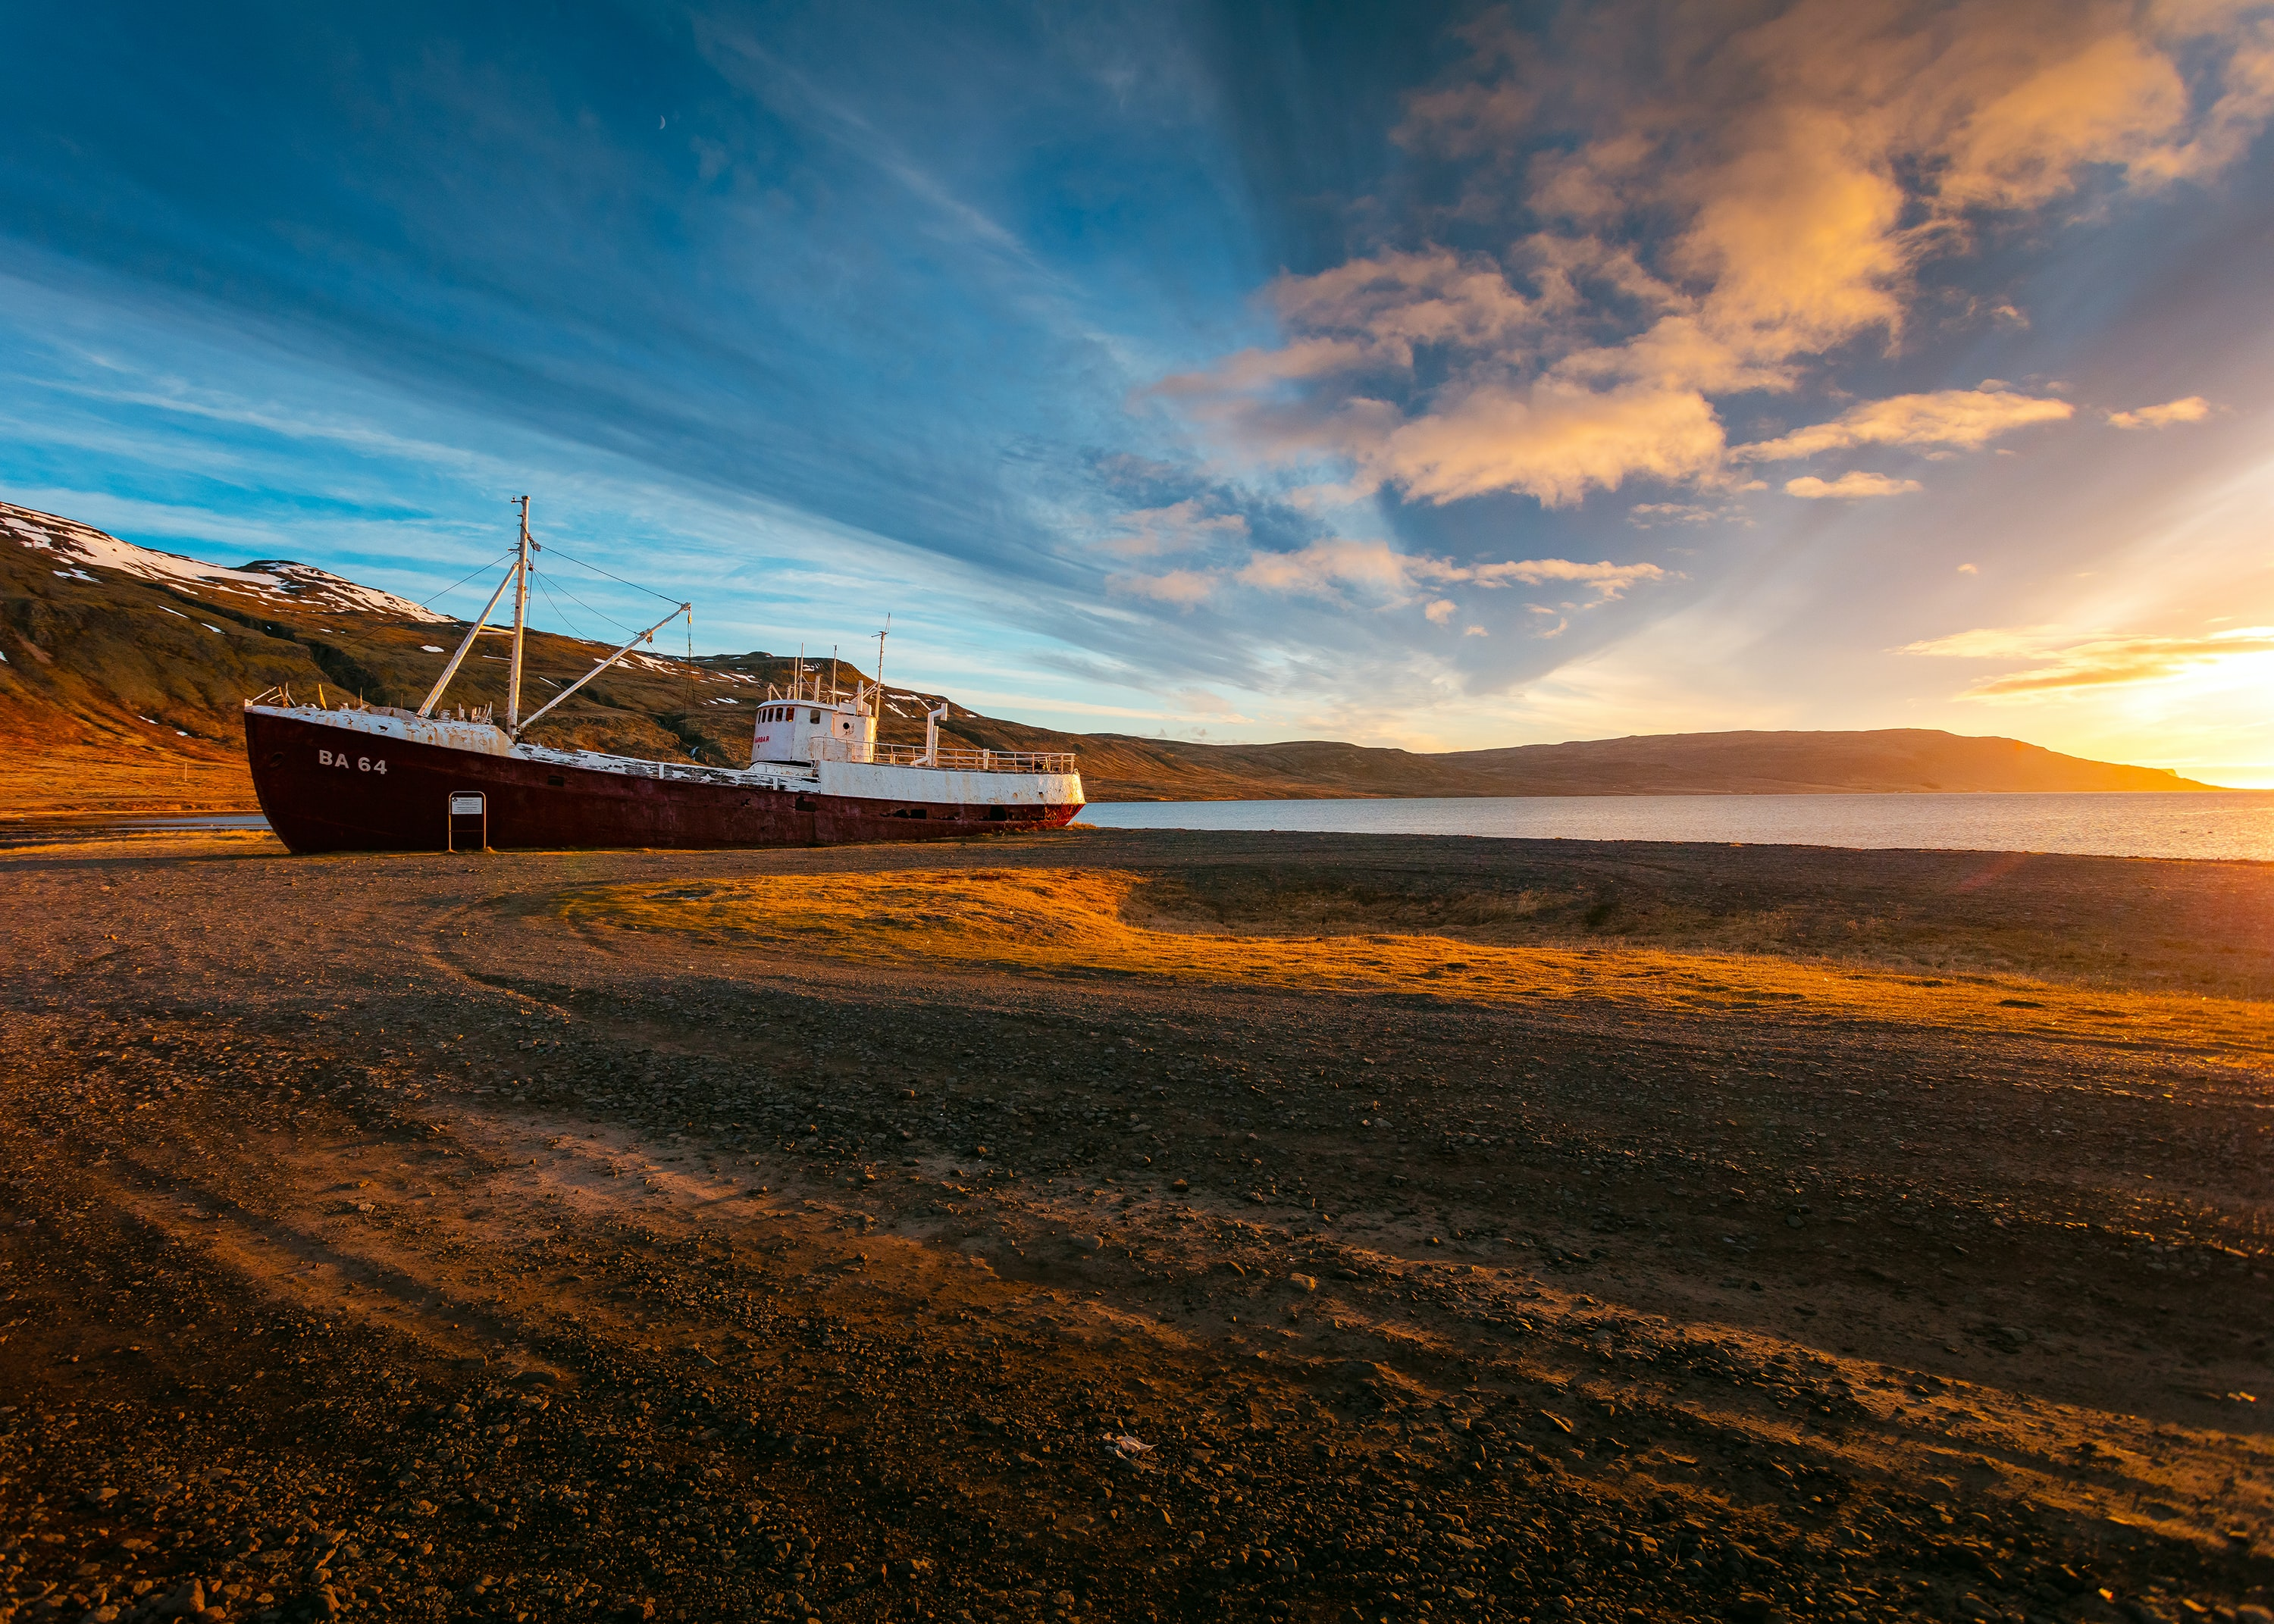 Moored ship on the sand beach at sunset